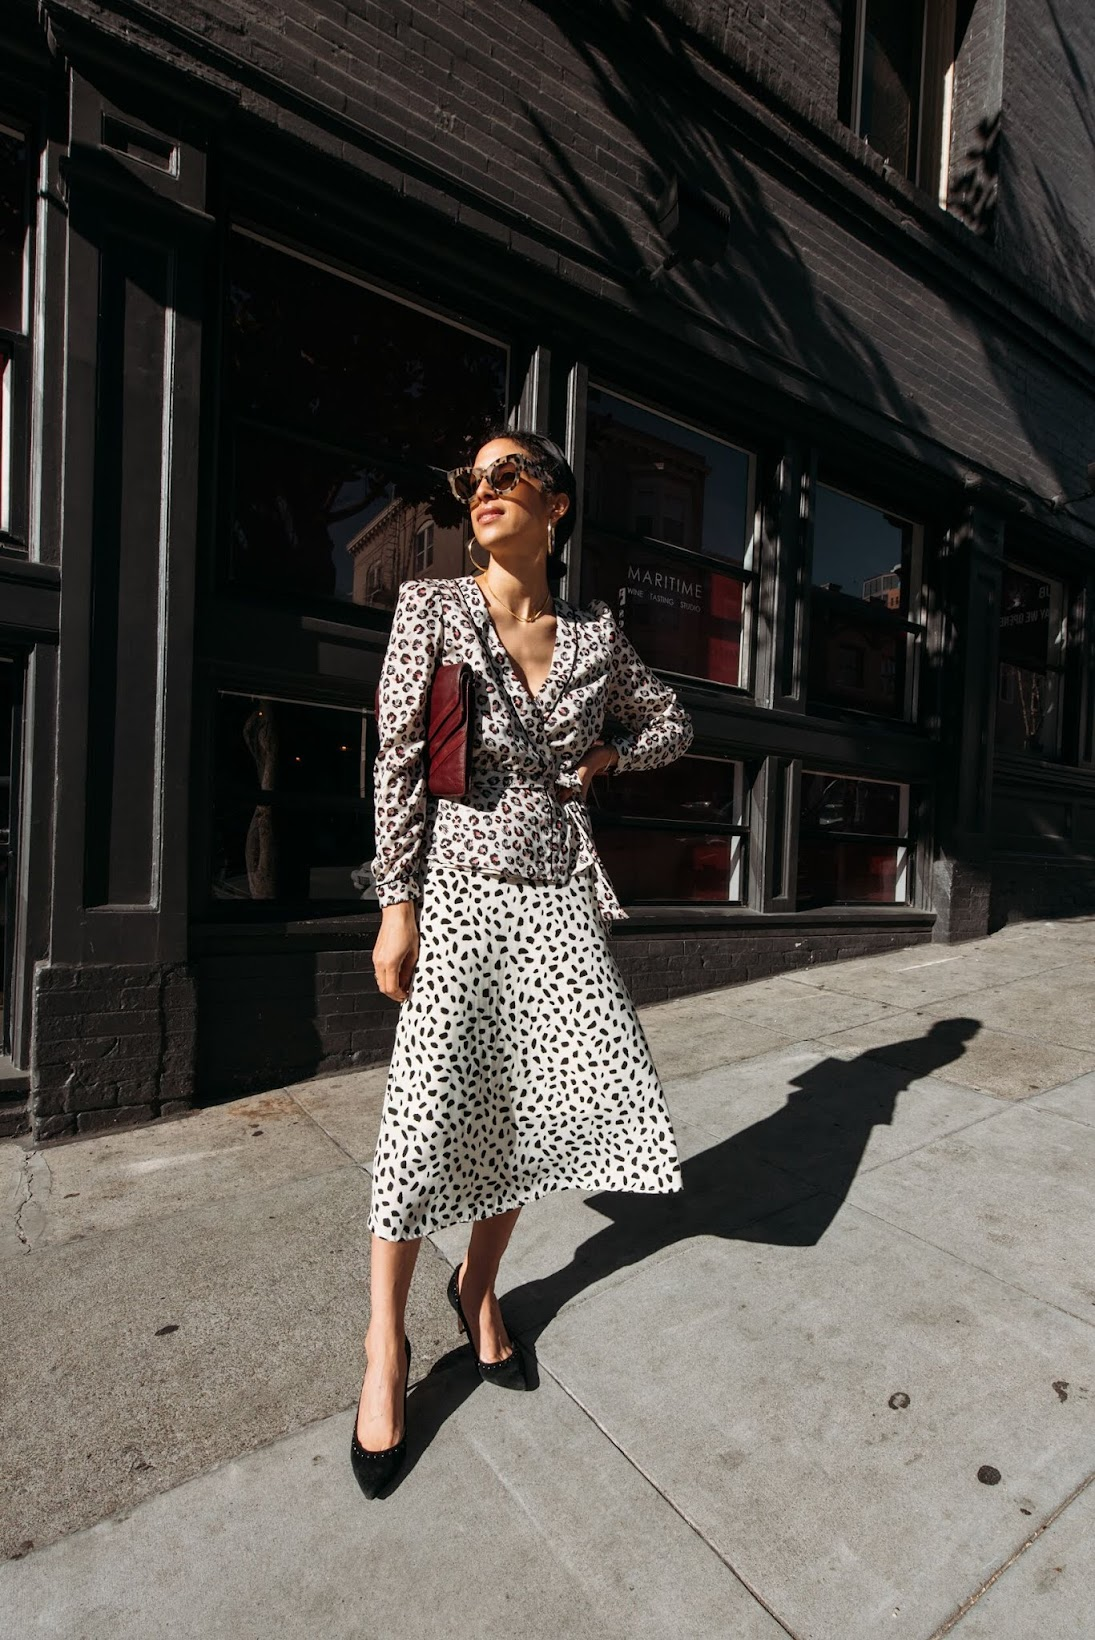 leopard looks, french girl style, San Francisco, City girl style, Parisian style, Camel coat, coach pumps